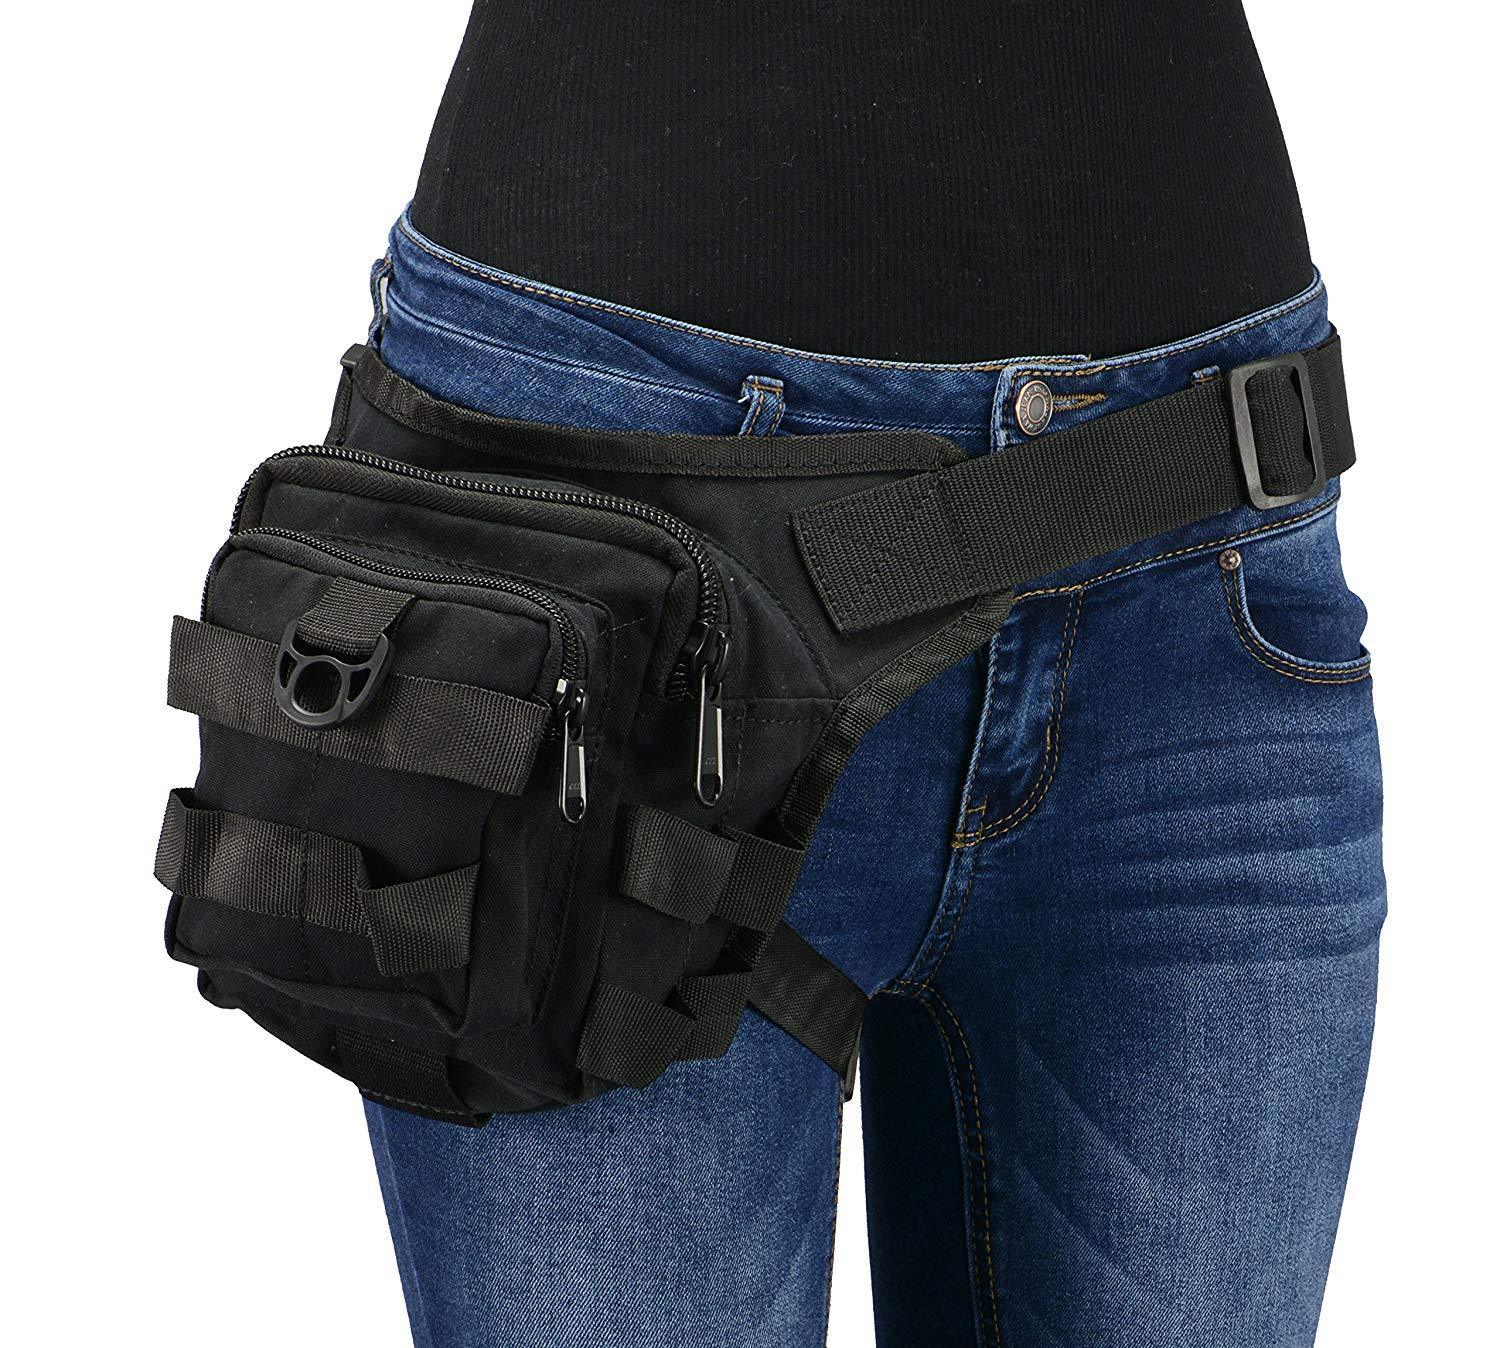 Milwaukee Leather MP8841 Conceal and Carry Black Textile Tactical